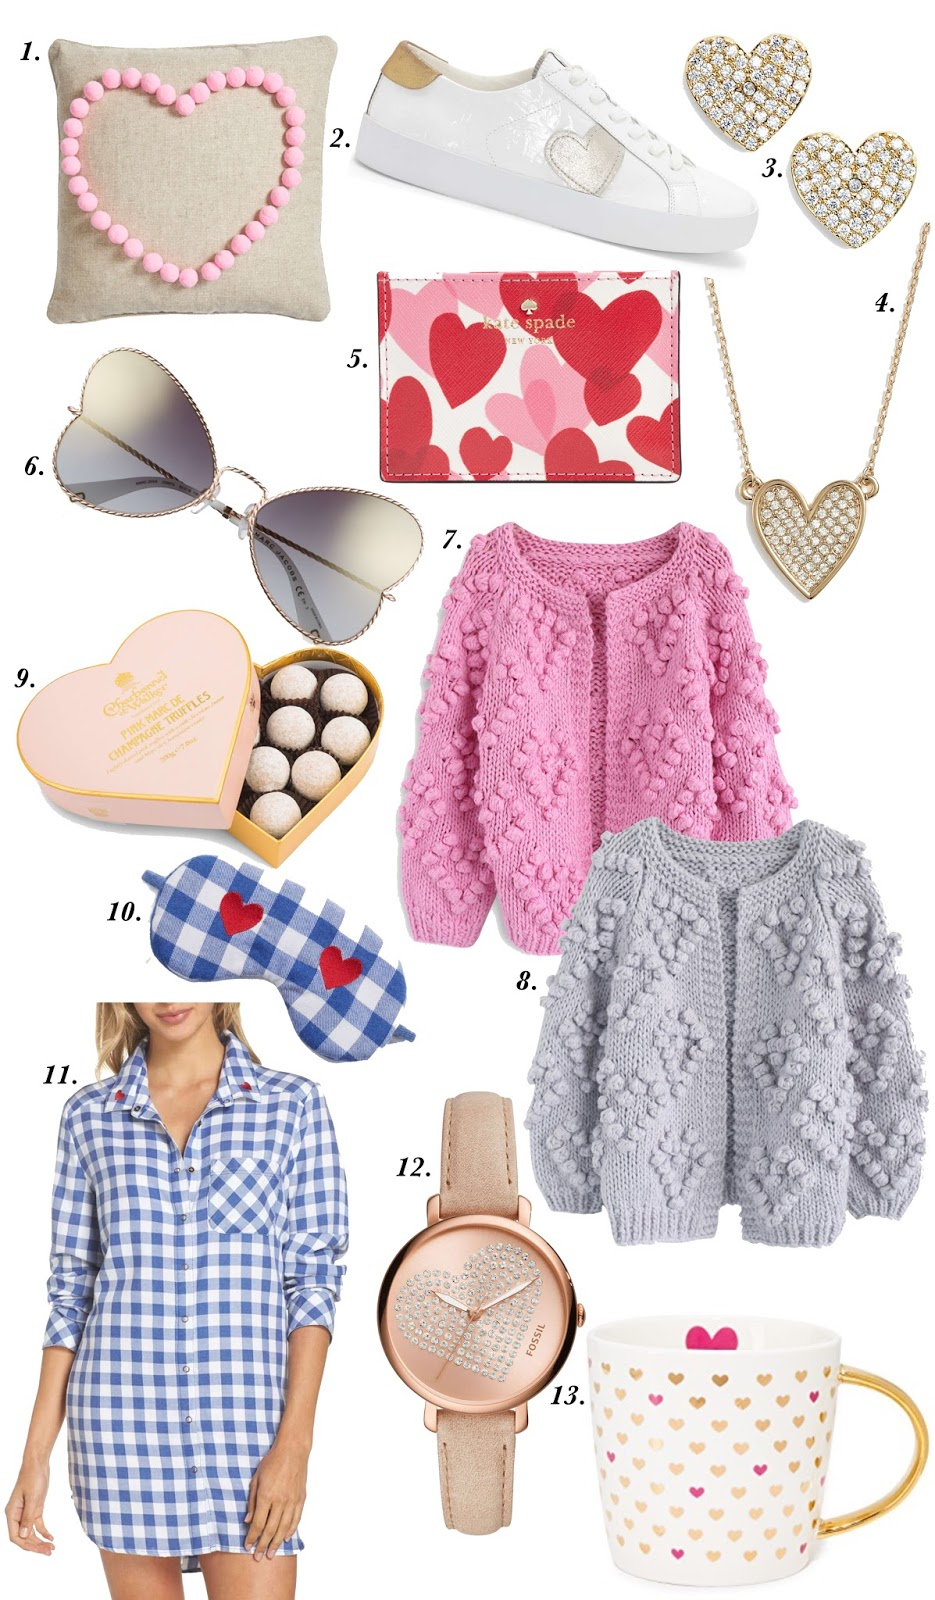 25 Heart Items - See them all on Something Delightful Blog